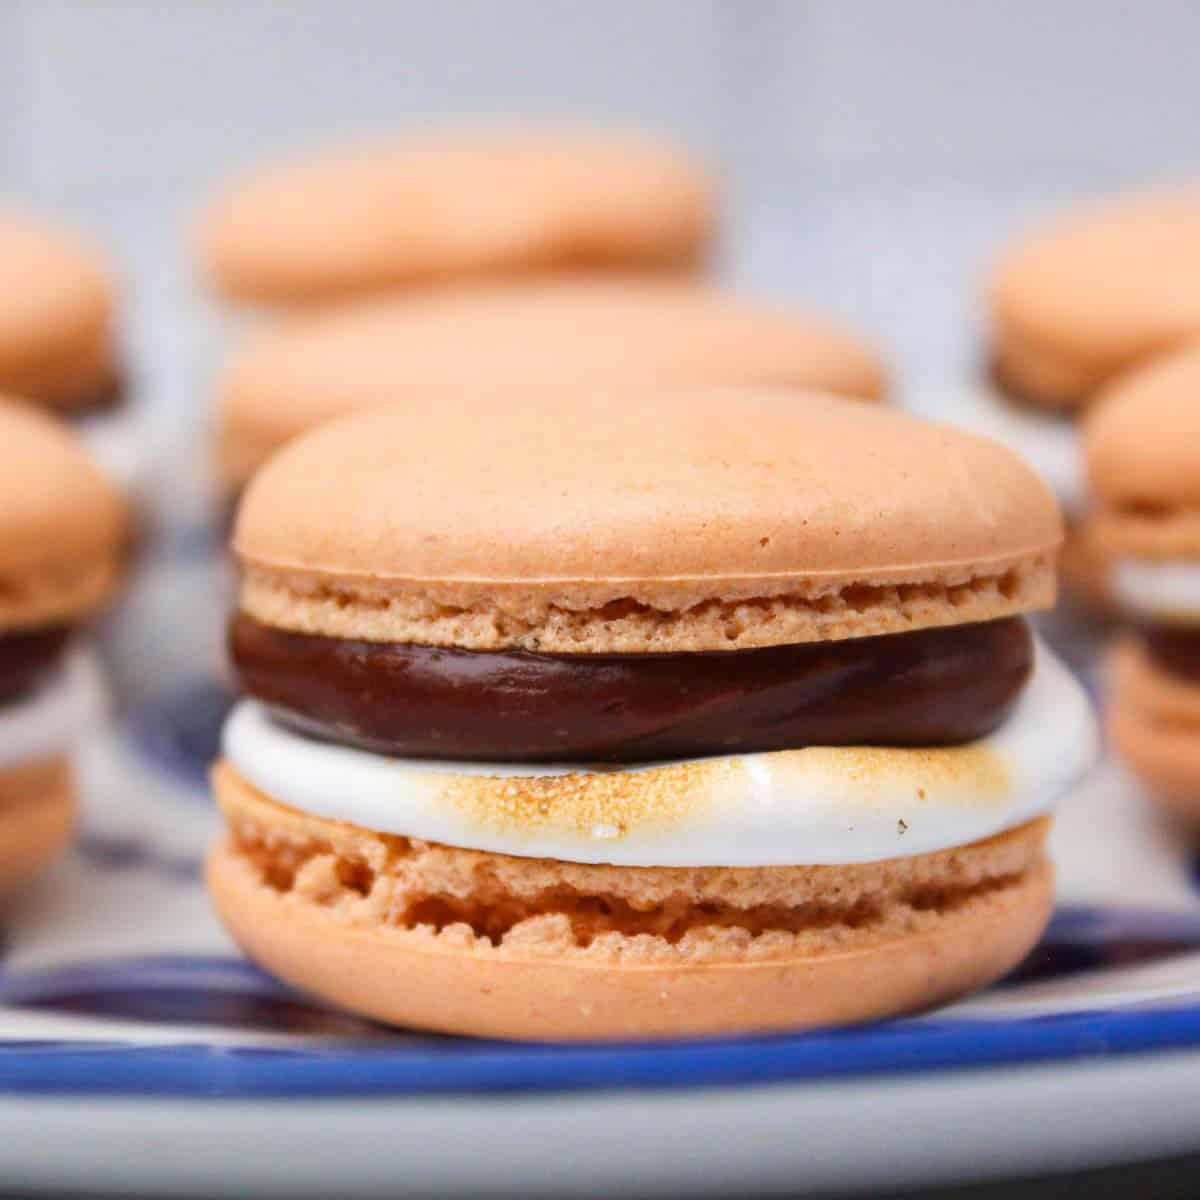 S'mores macaron with chocolate and marshmallow filling.